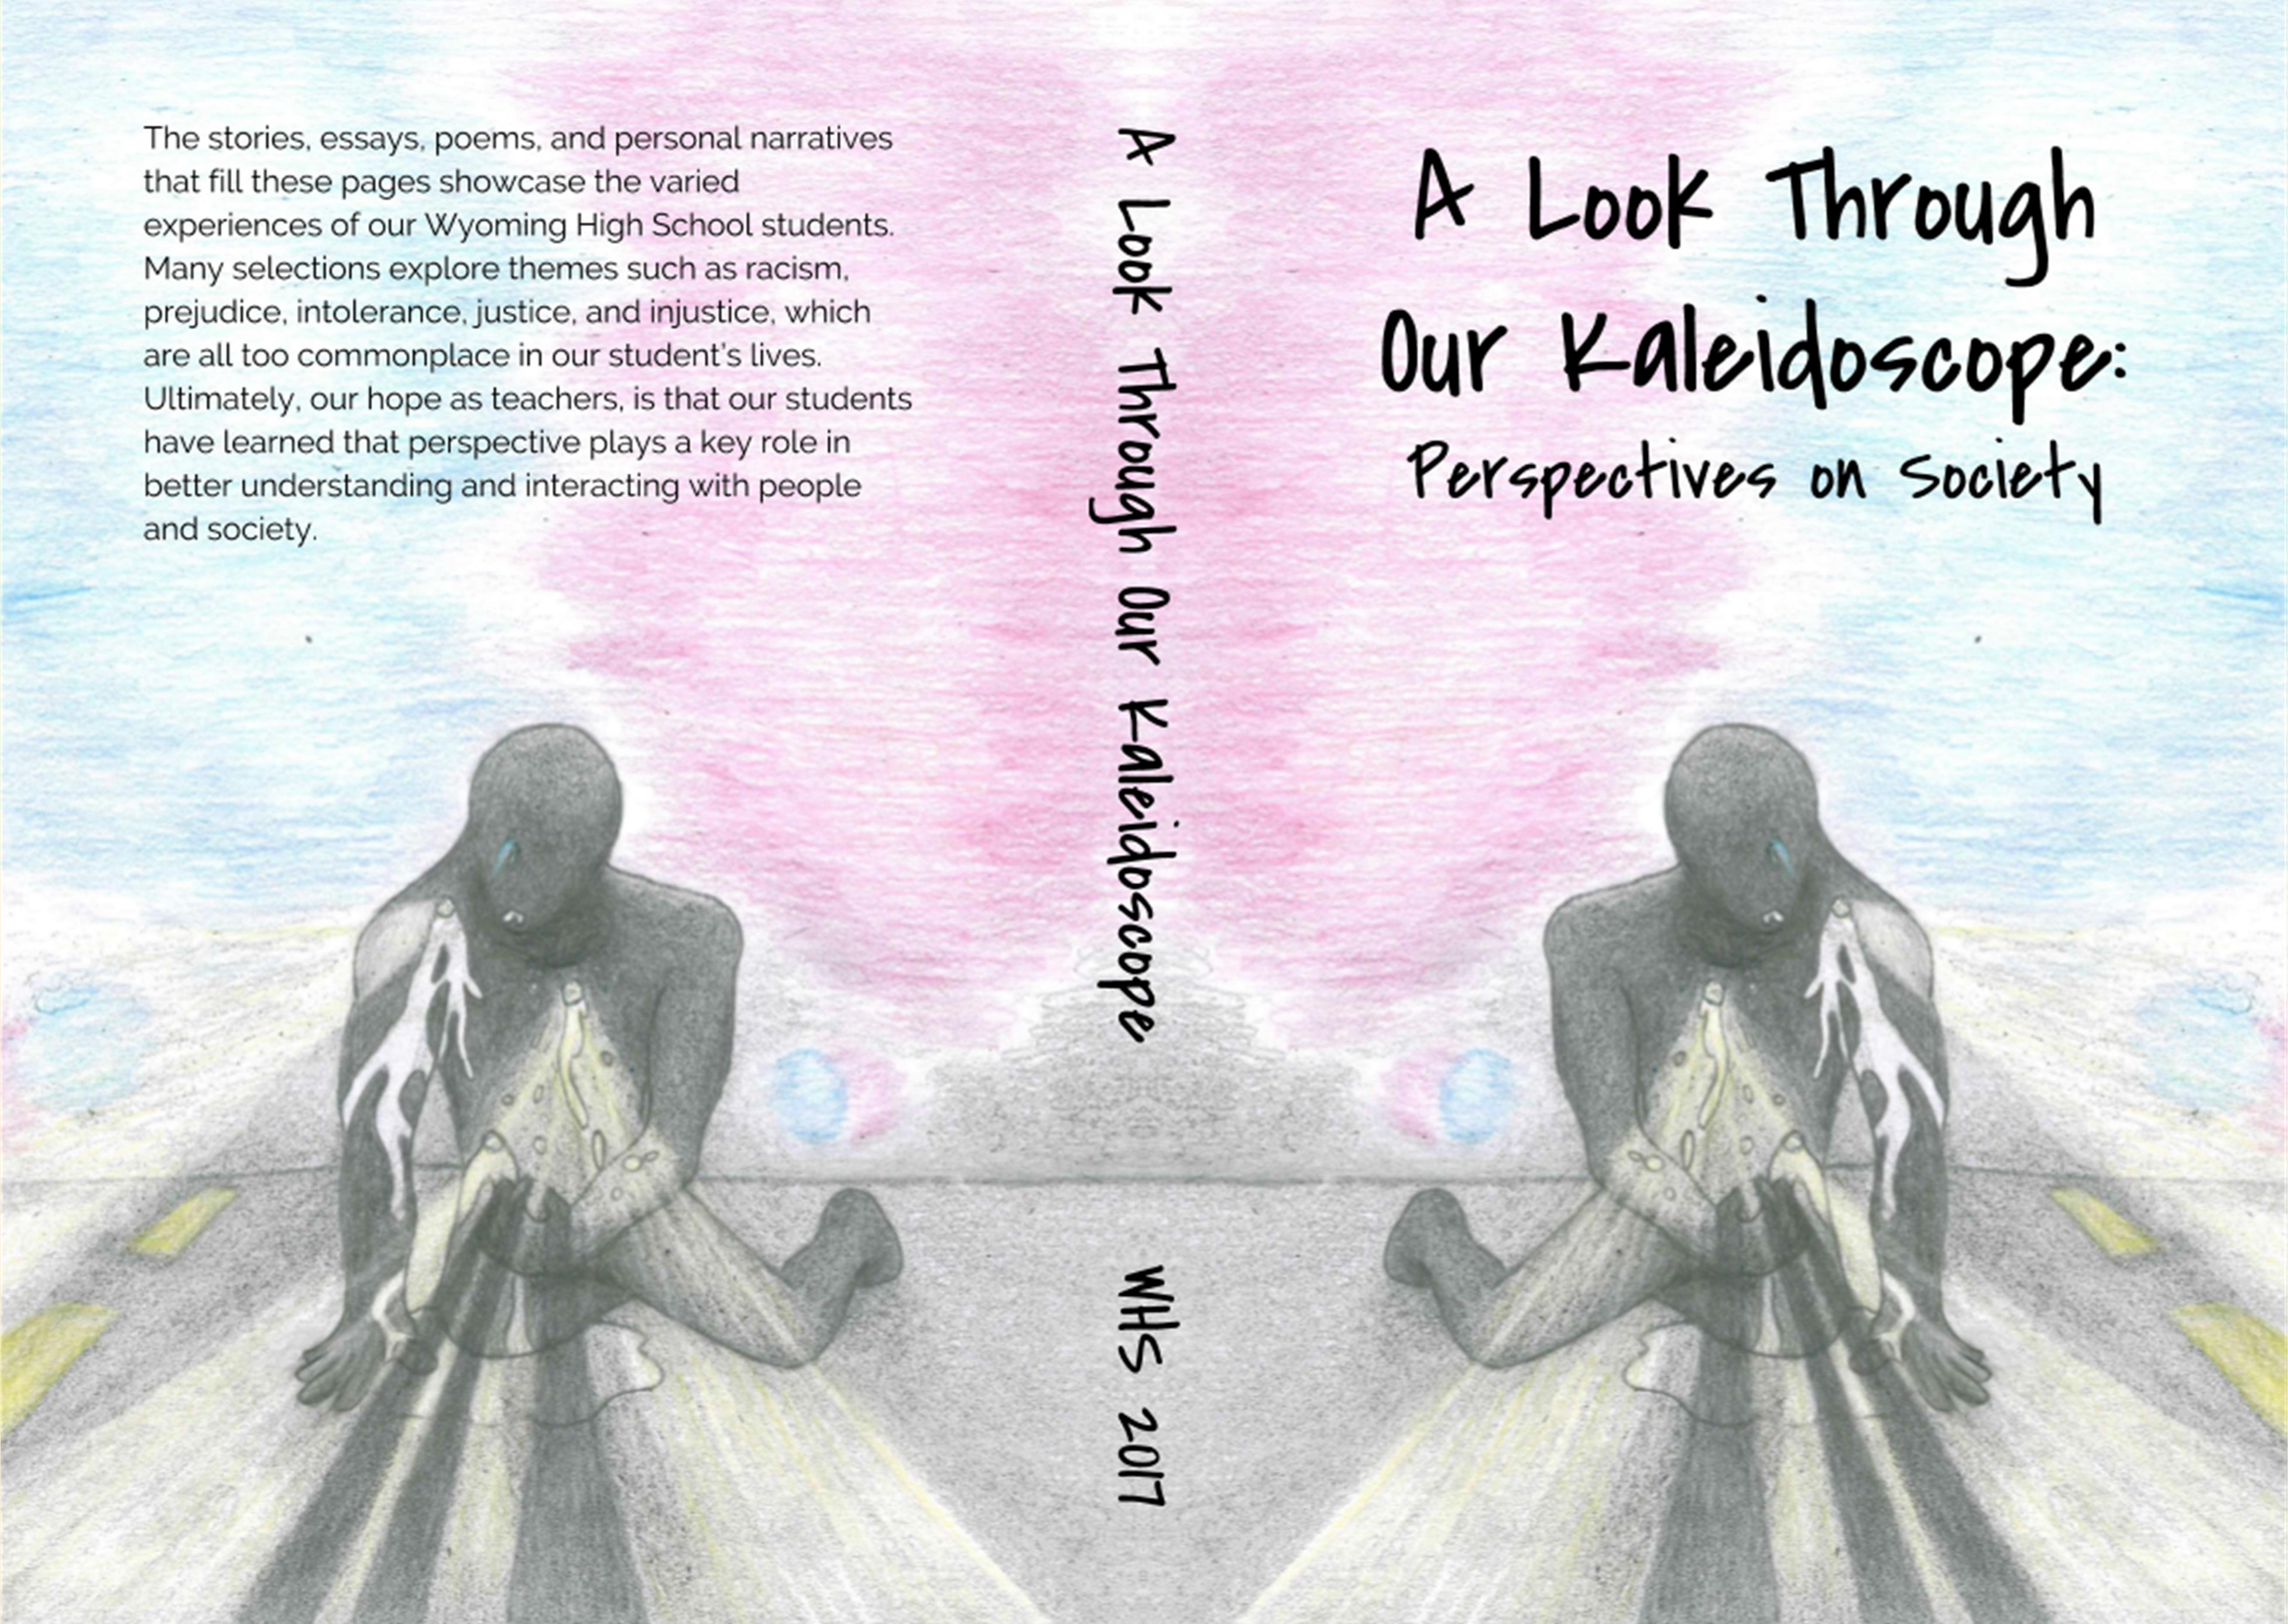 A Look Through Our Kaleidoscope: perspectives on society cover image